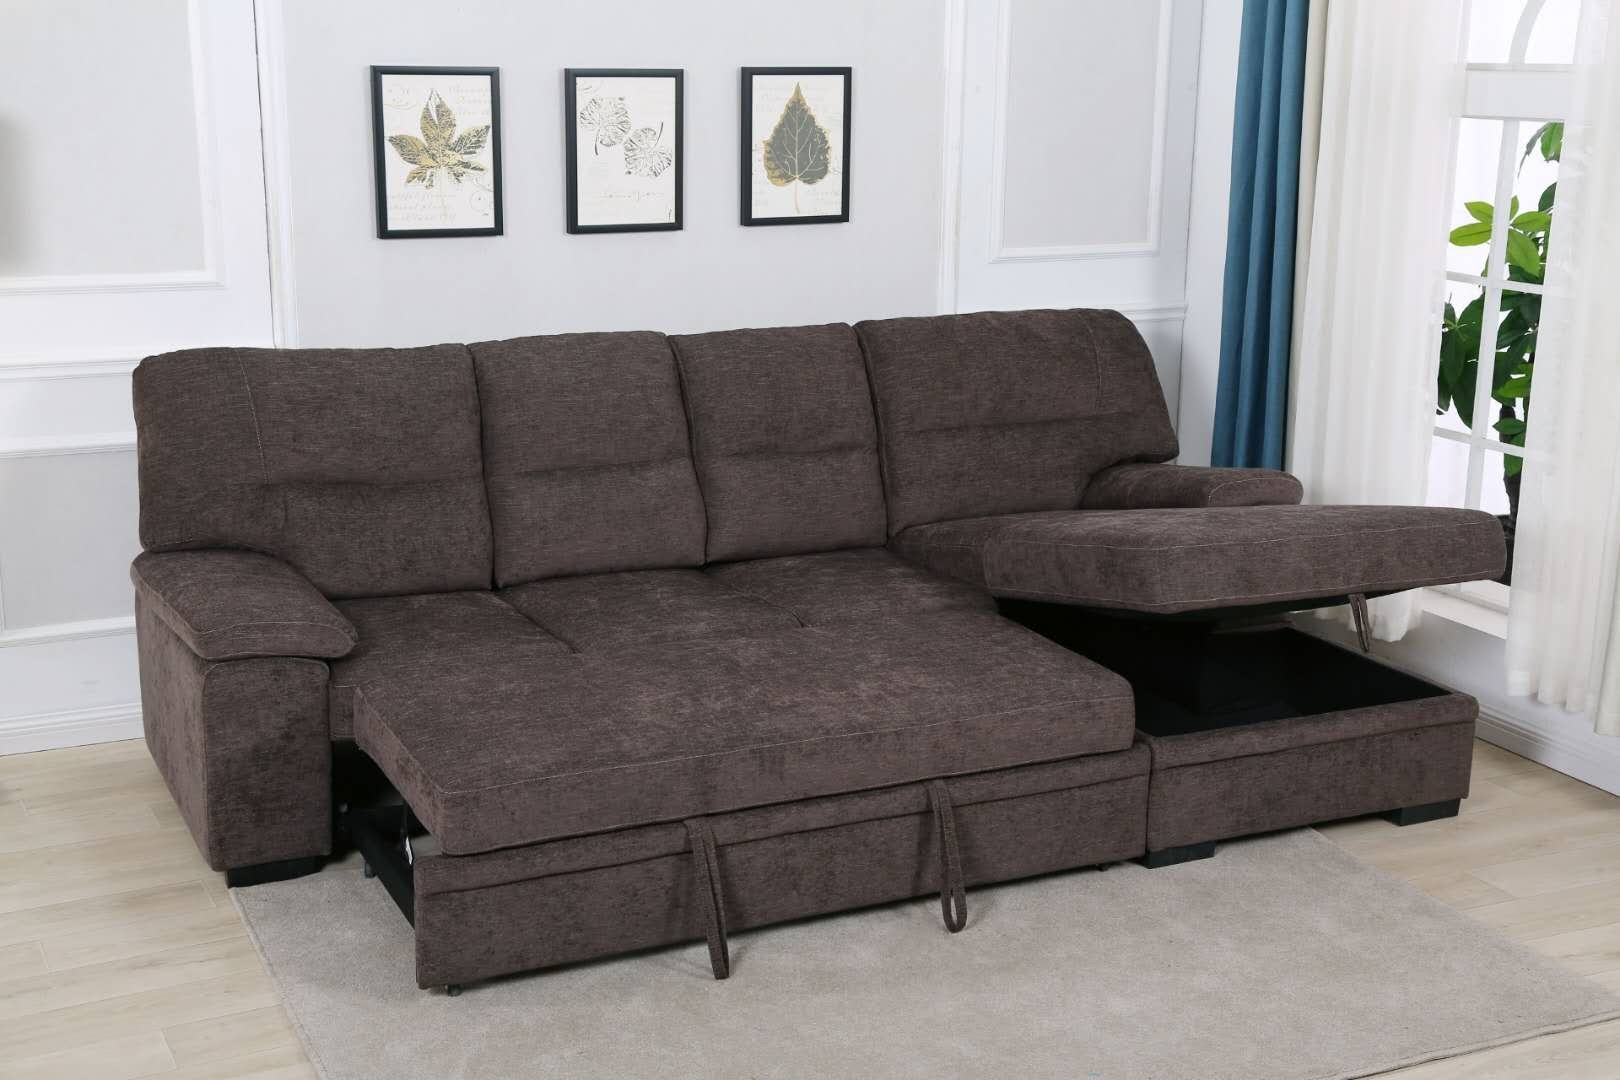 Silvio Sectional Sofa/ Sofa Bed With Storage Ifurniture Regarding Live It Cozy Sectional Sofa Beds With Storage (View 5 of 15)